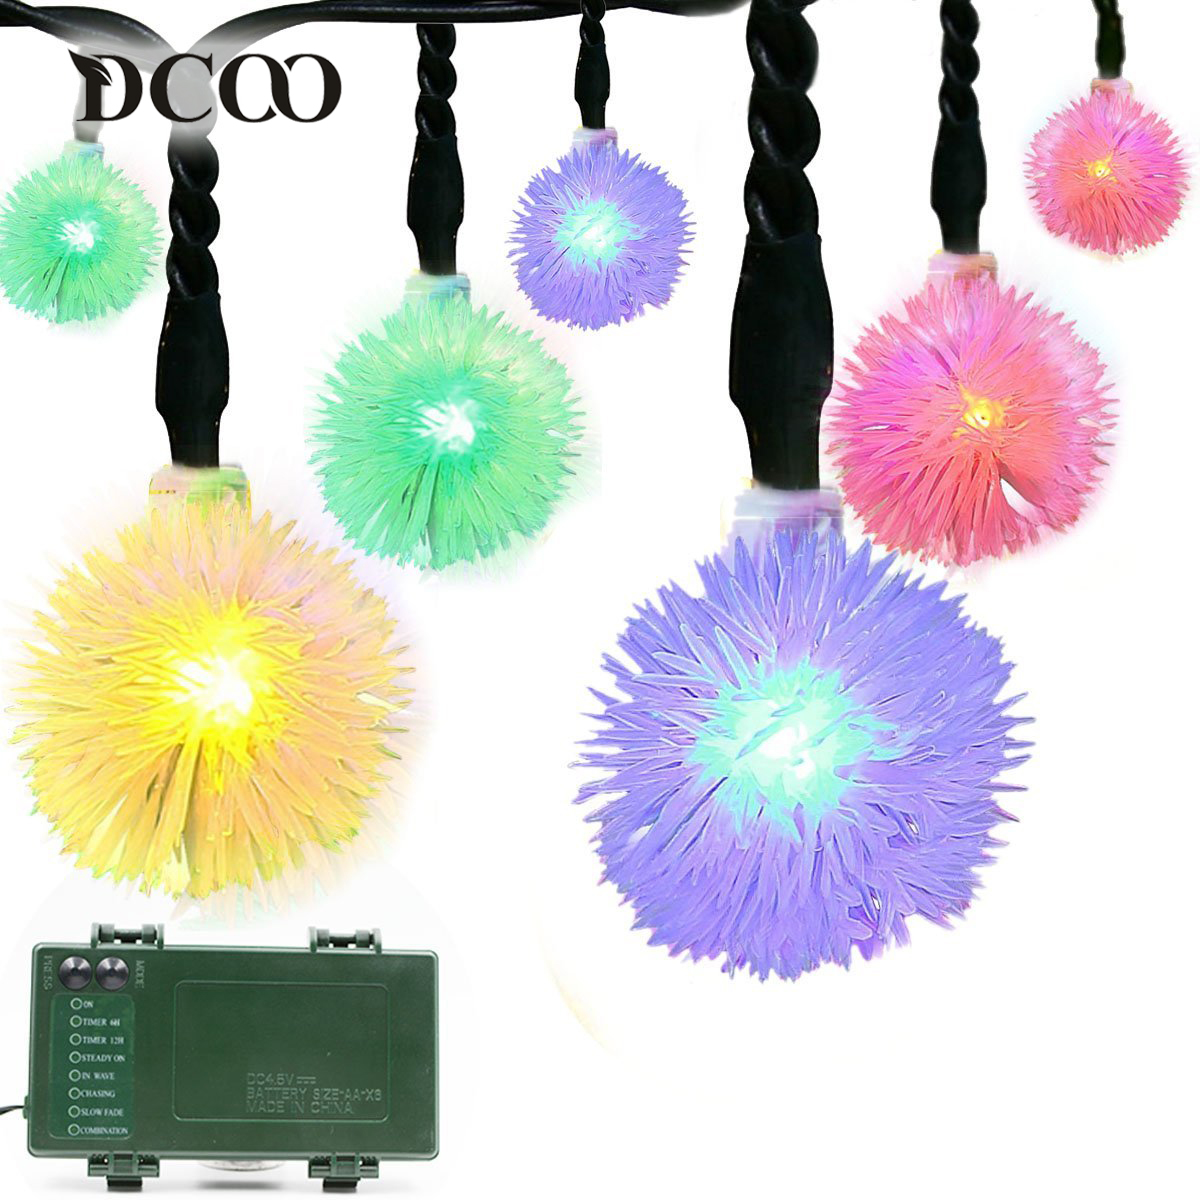 Dcoo Battery Led String Lights 50leds Chuzzle Ball Operated Automatic Christmas Outdoor Lighting Fairy Lights Wedding